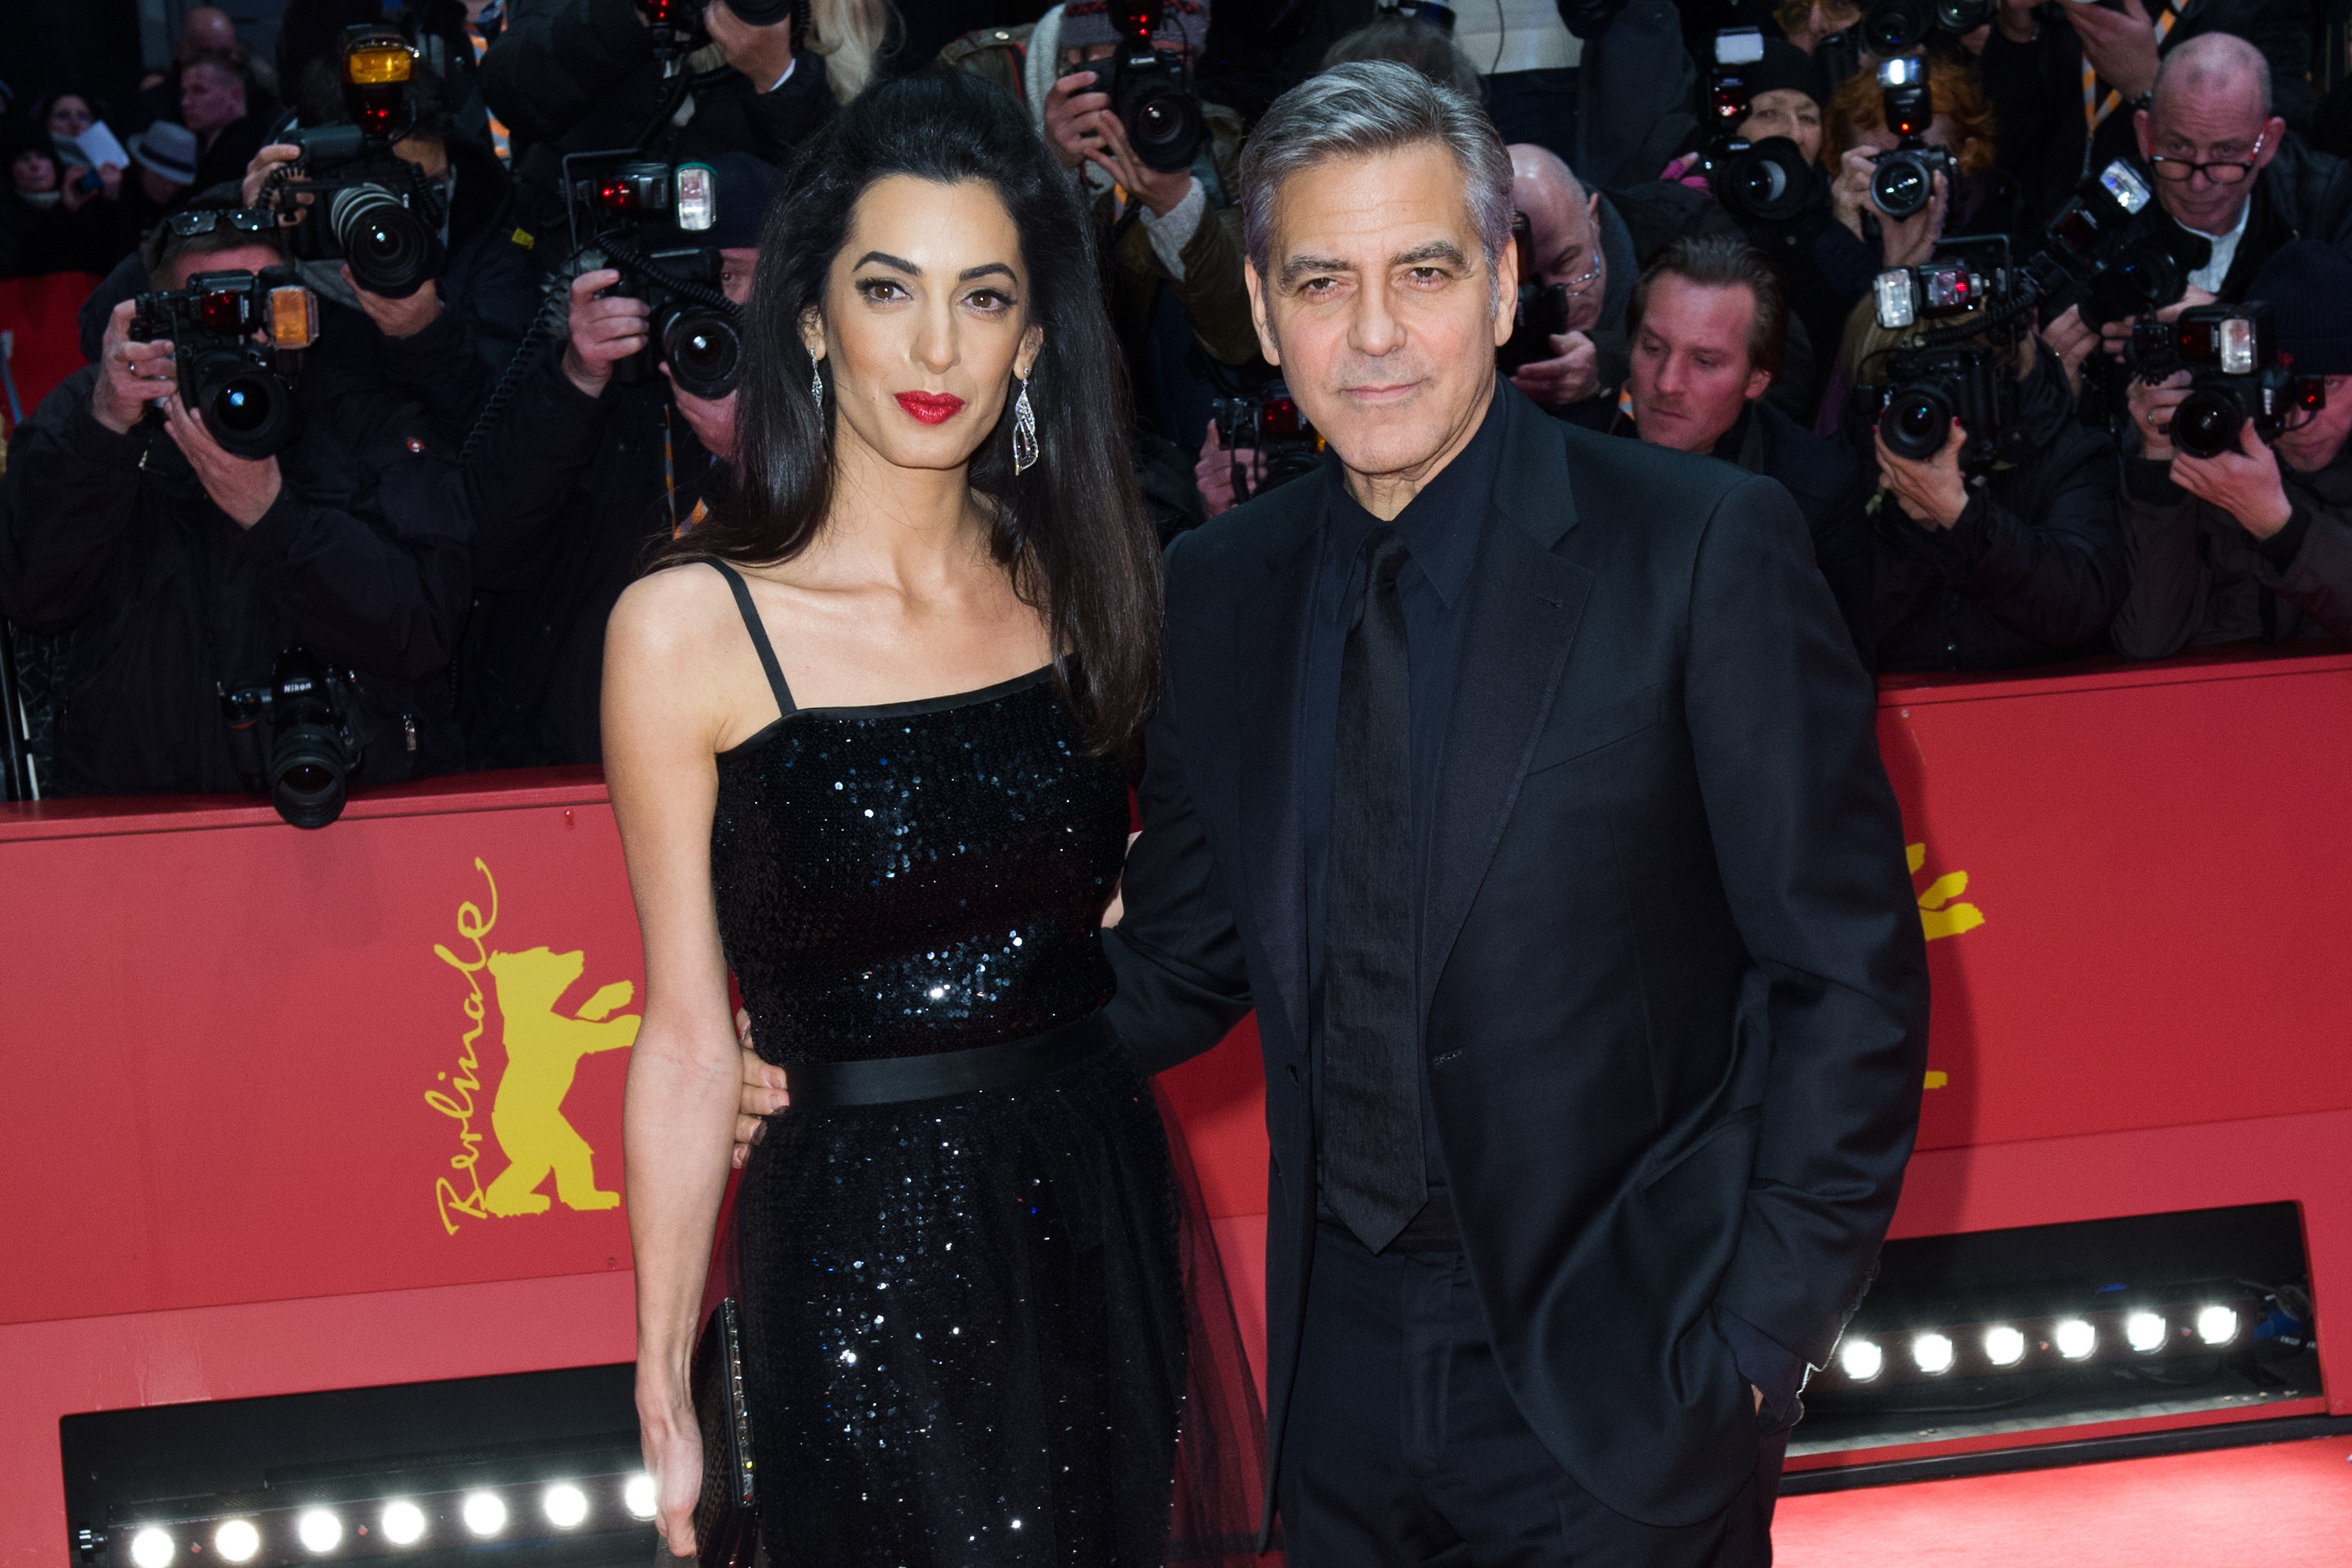 George Clooney and his wife Amal attend the 'Hail, Caesar!' premiere during the 66th Berlinale International Film Festival Berlin at Berlinale Palace on February 11, 2016 in Berlin, Germany.